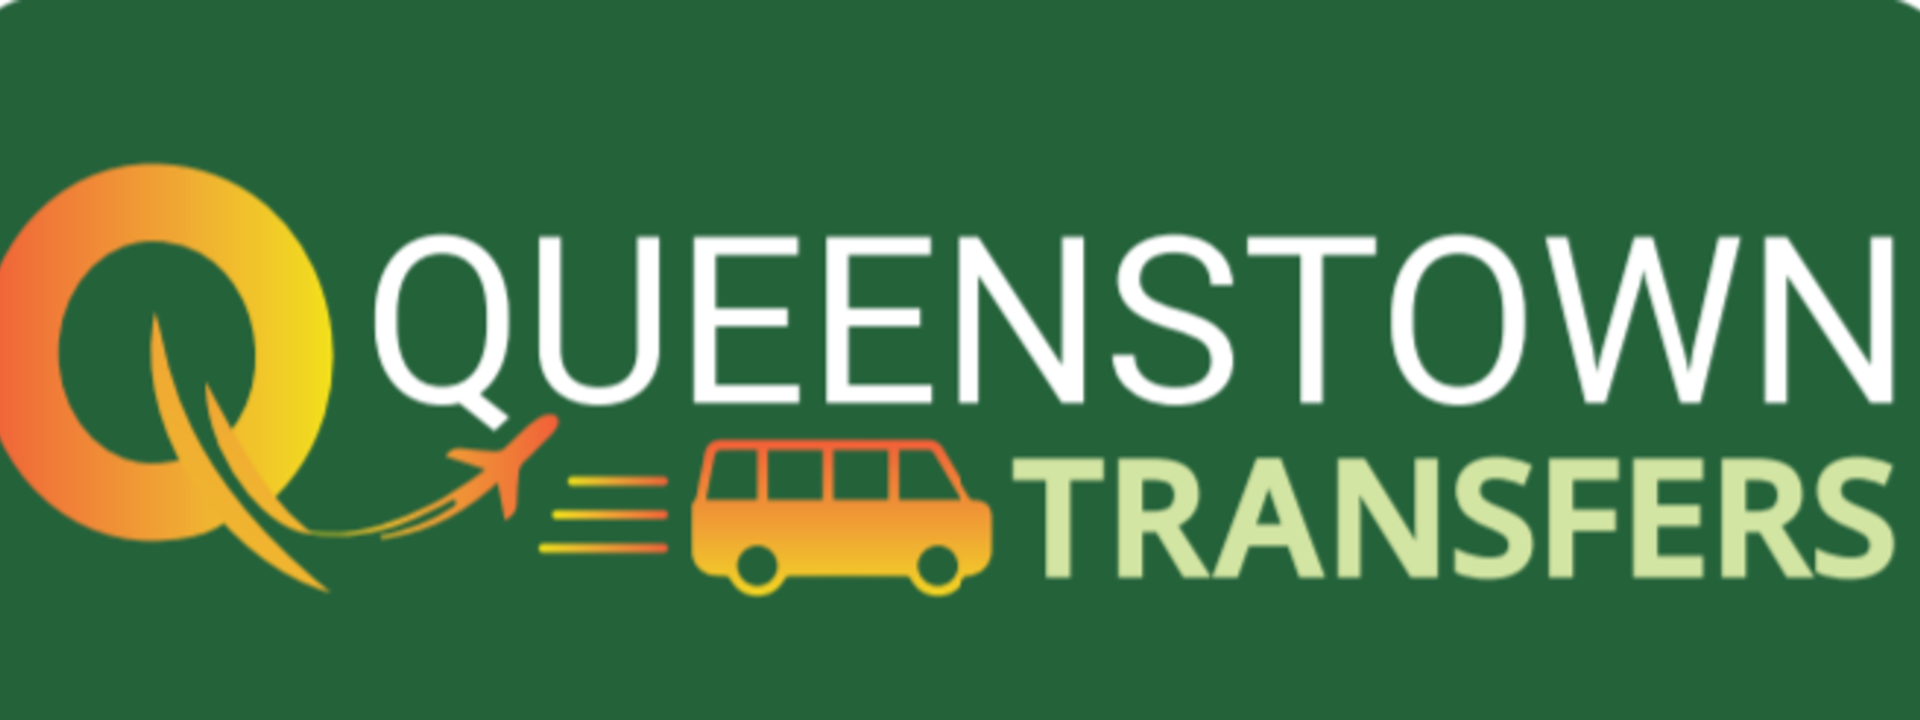 Logo: QUEENSTOWN TRANSFERS LIMITED